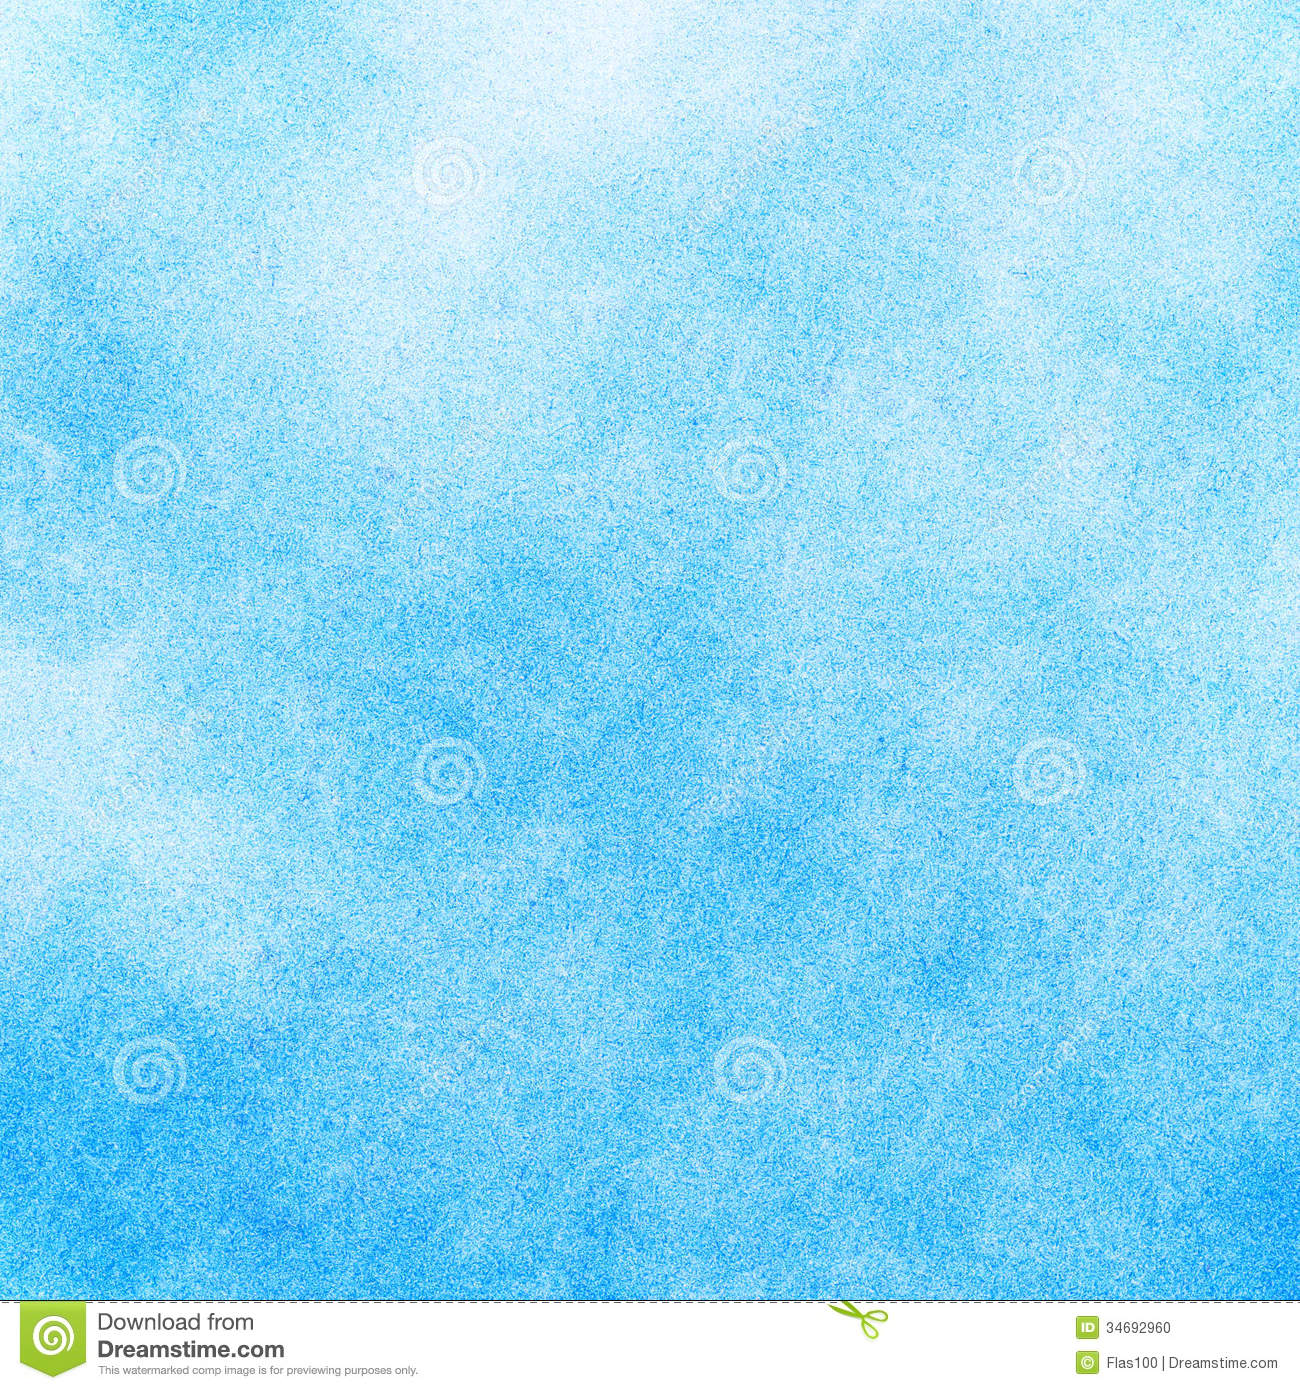 Abstract Blue Watercolor Background Stock Photo - Image: 34692960